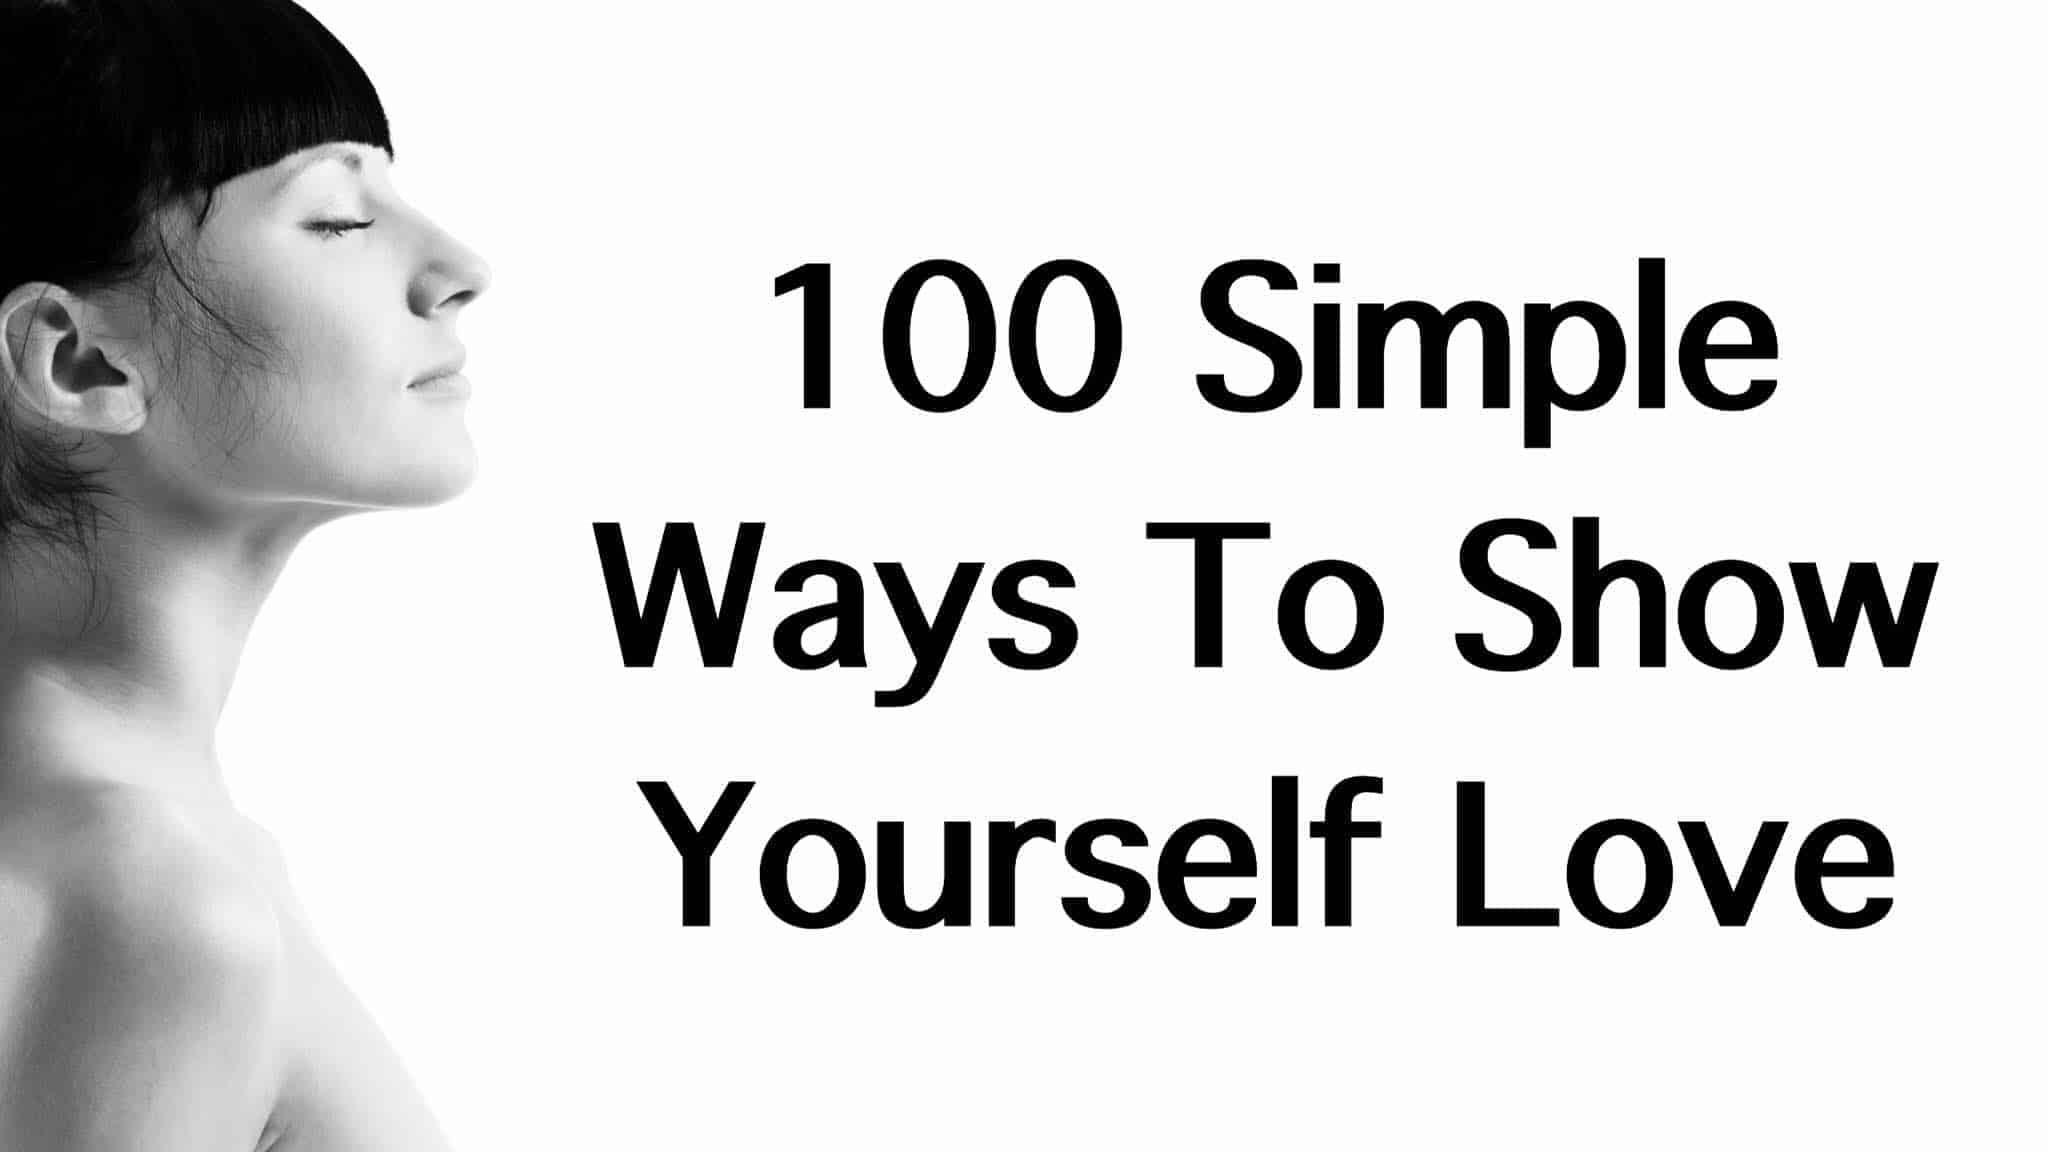 100 Simple Ways To Show Yourself Love-6361